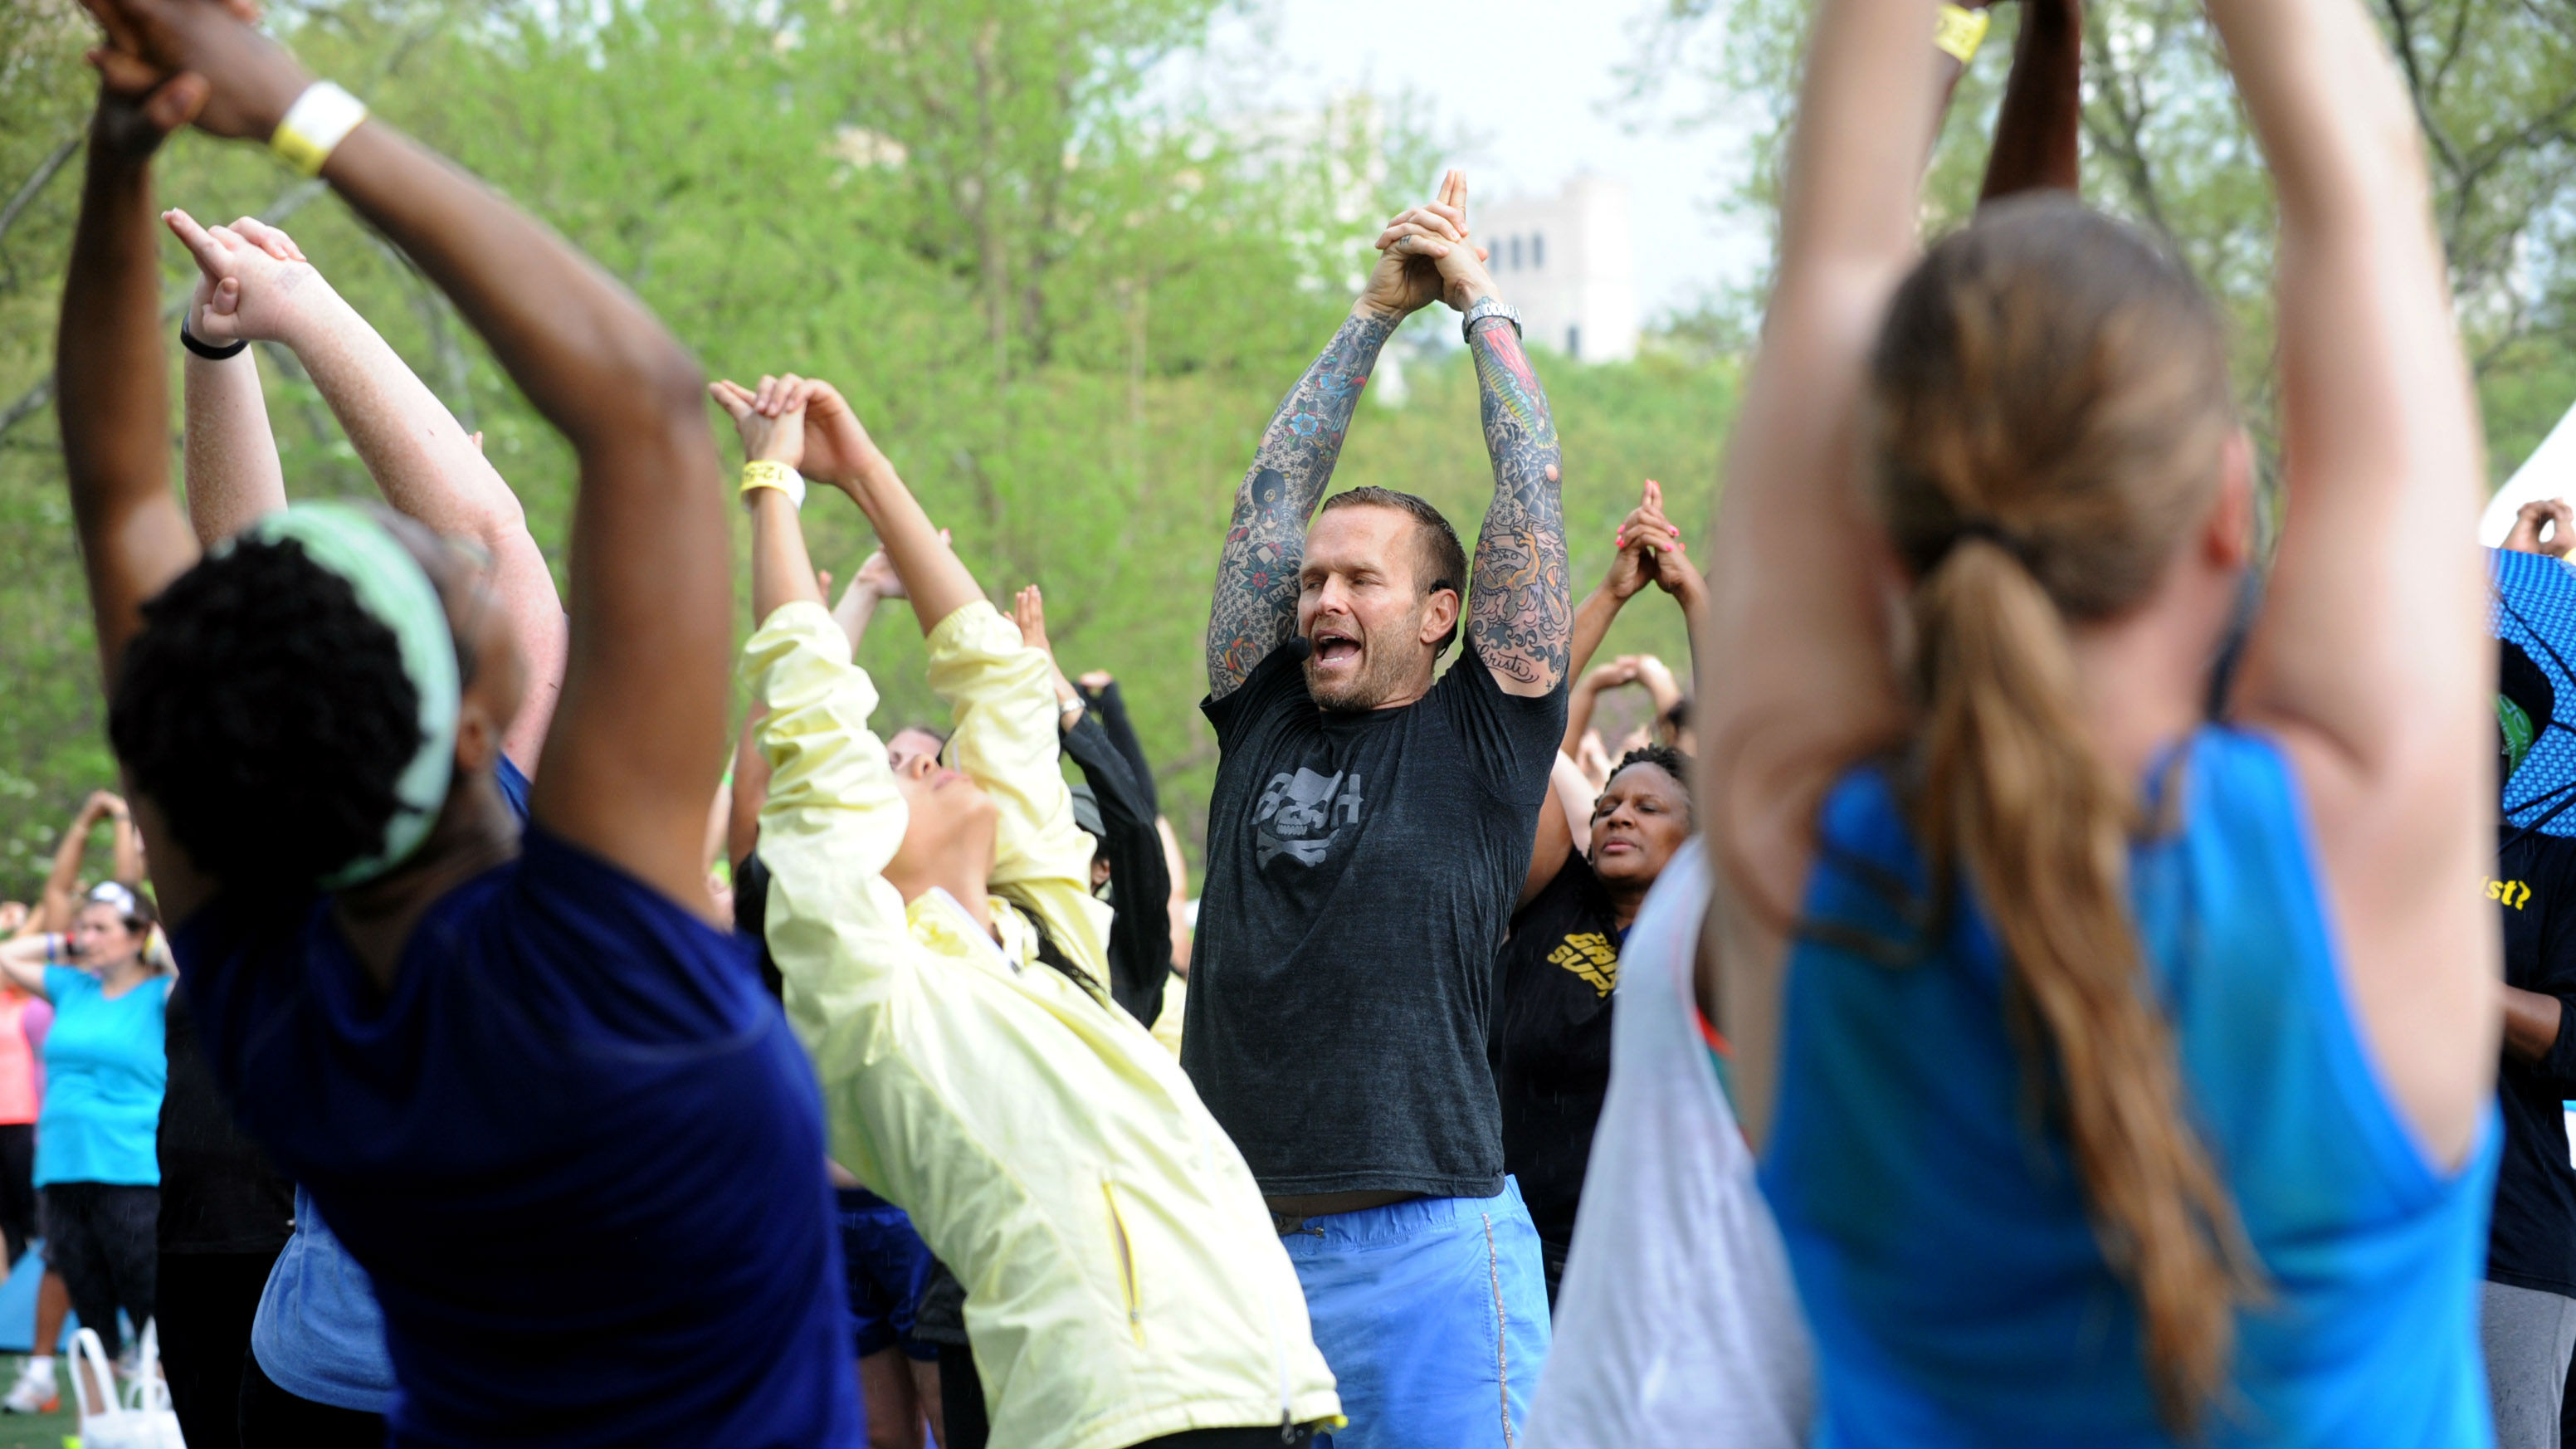 """Bob Harper, trainer on """"The Biggest Loser,"""" stretches after leading a body-blasting class at SELF magazine's 21st annual Workout in the Park, Saturday, May 10, 2014, in New York's Central Park."""